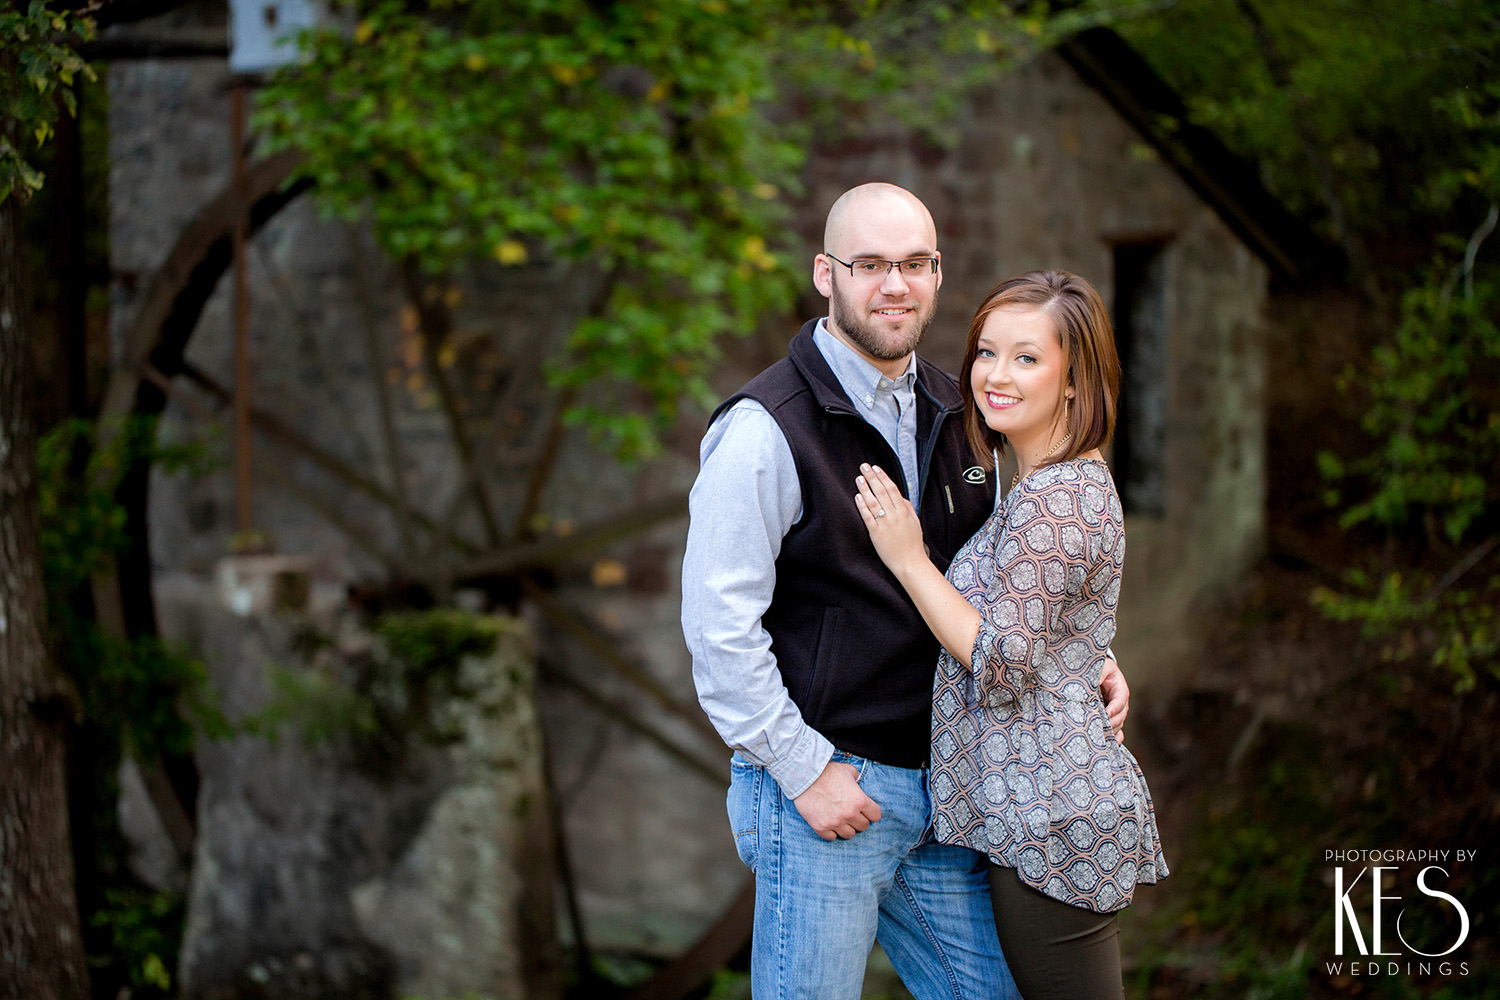 Caitlin_JohnMark_Engagements_0286.JPG